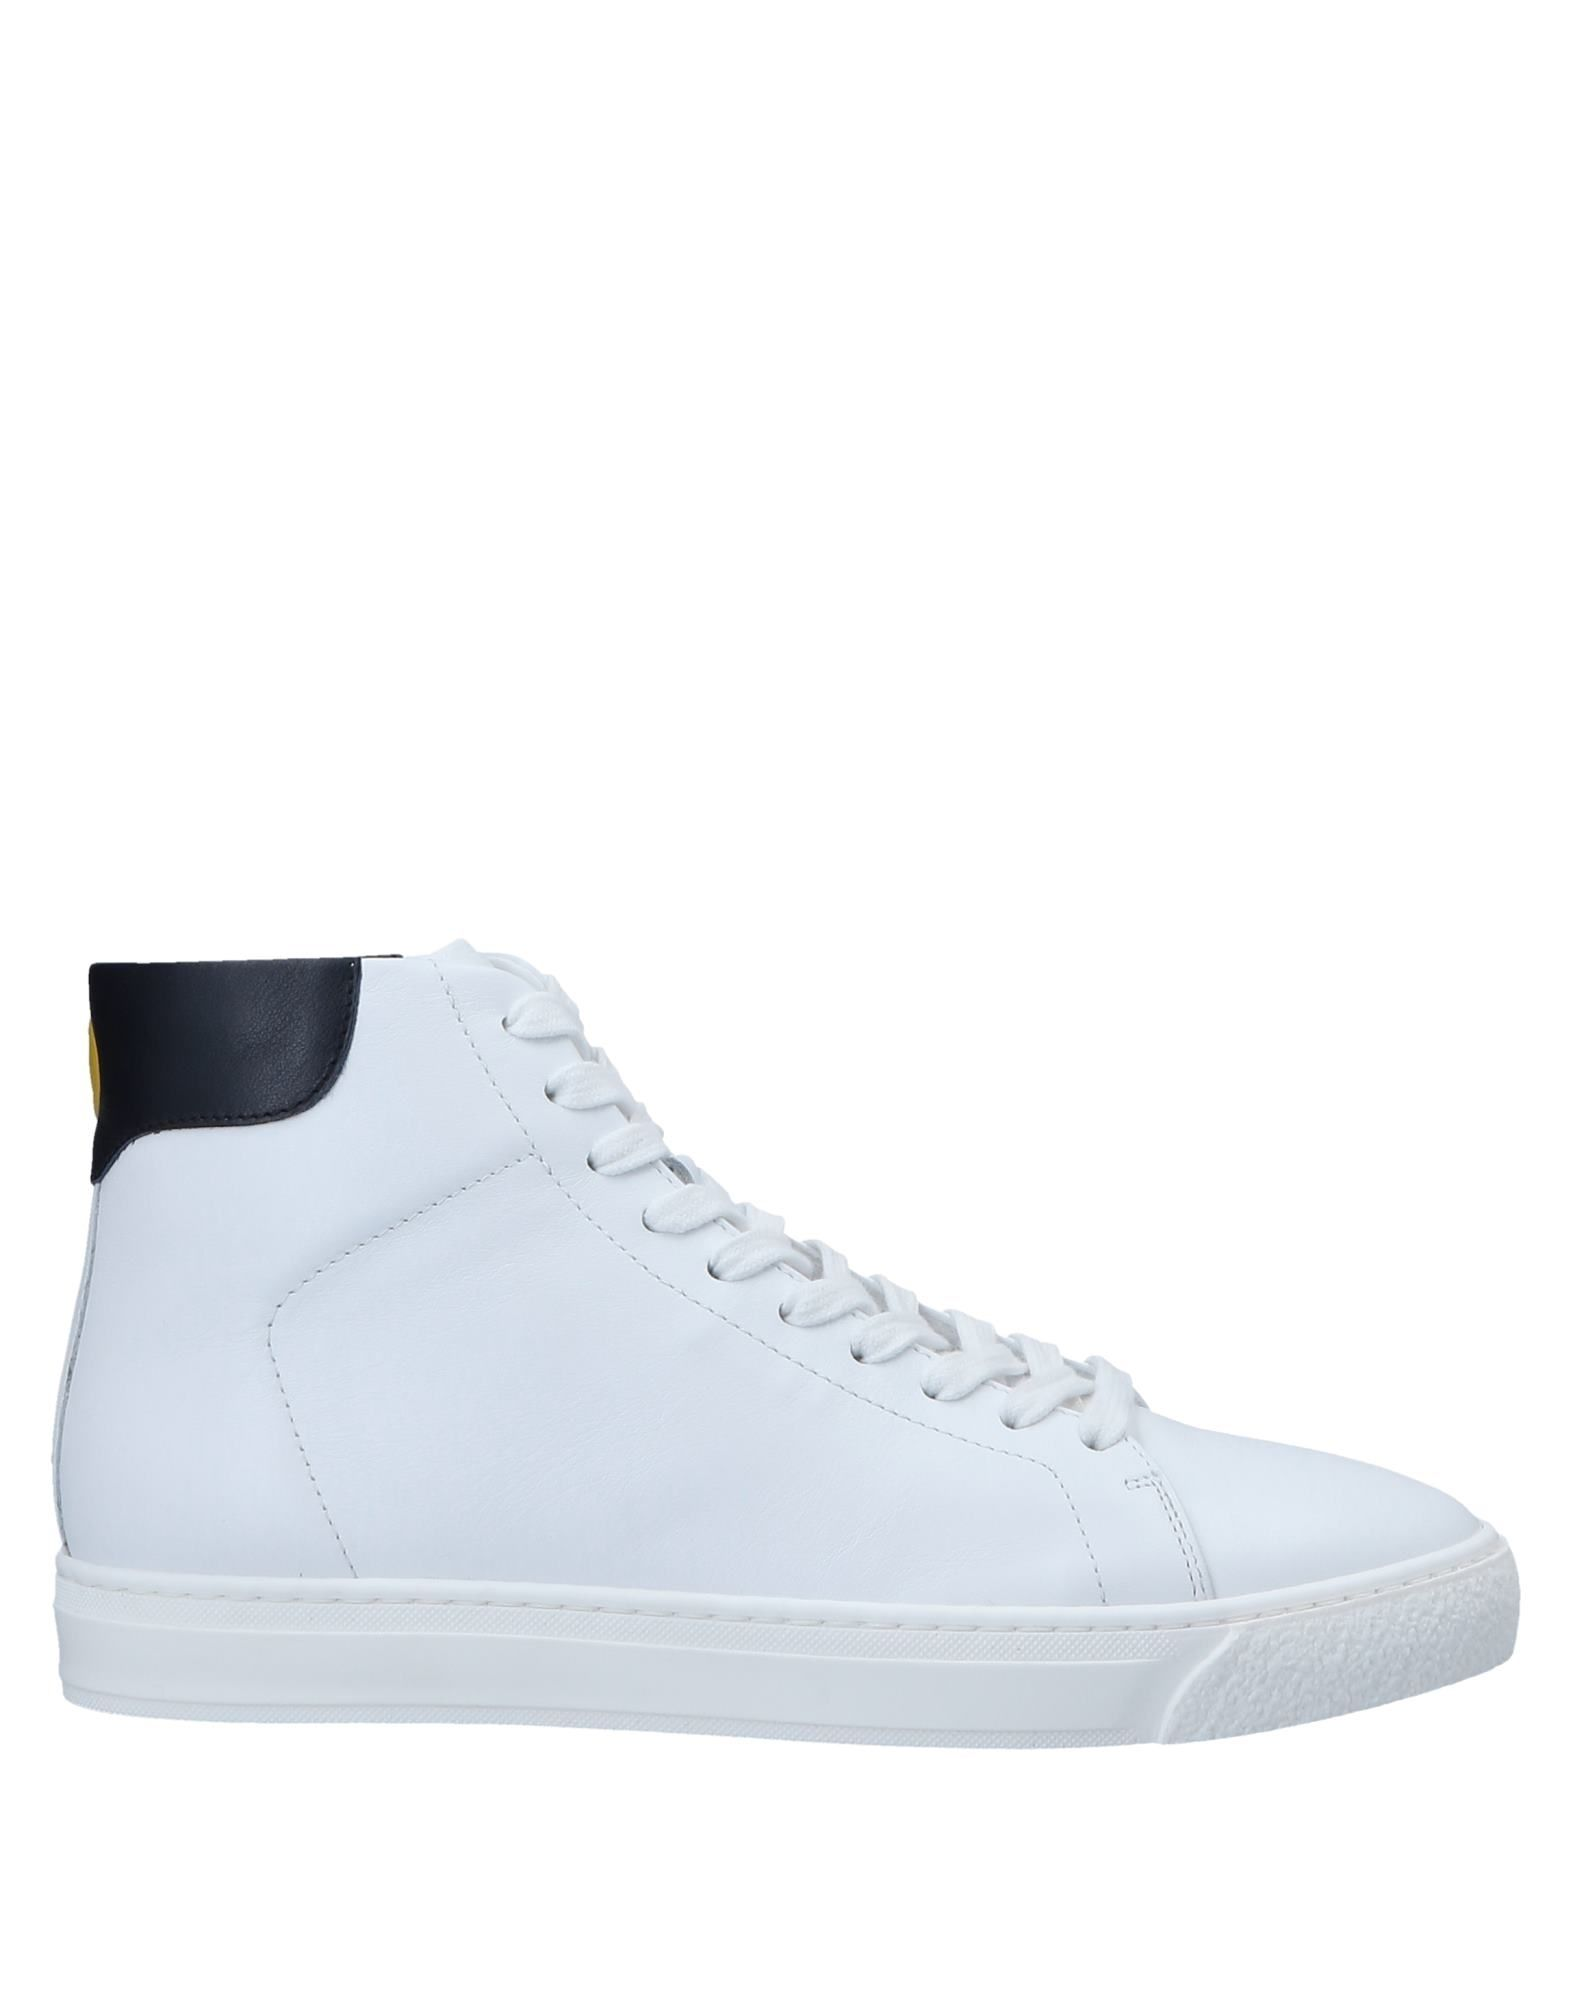 Anya Hindmarch Sneakers - Women Anya Hindmarch Sneakers online - on  United Kingdom - online 11552513FX e0f369